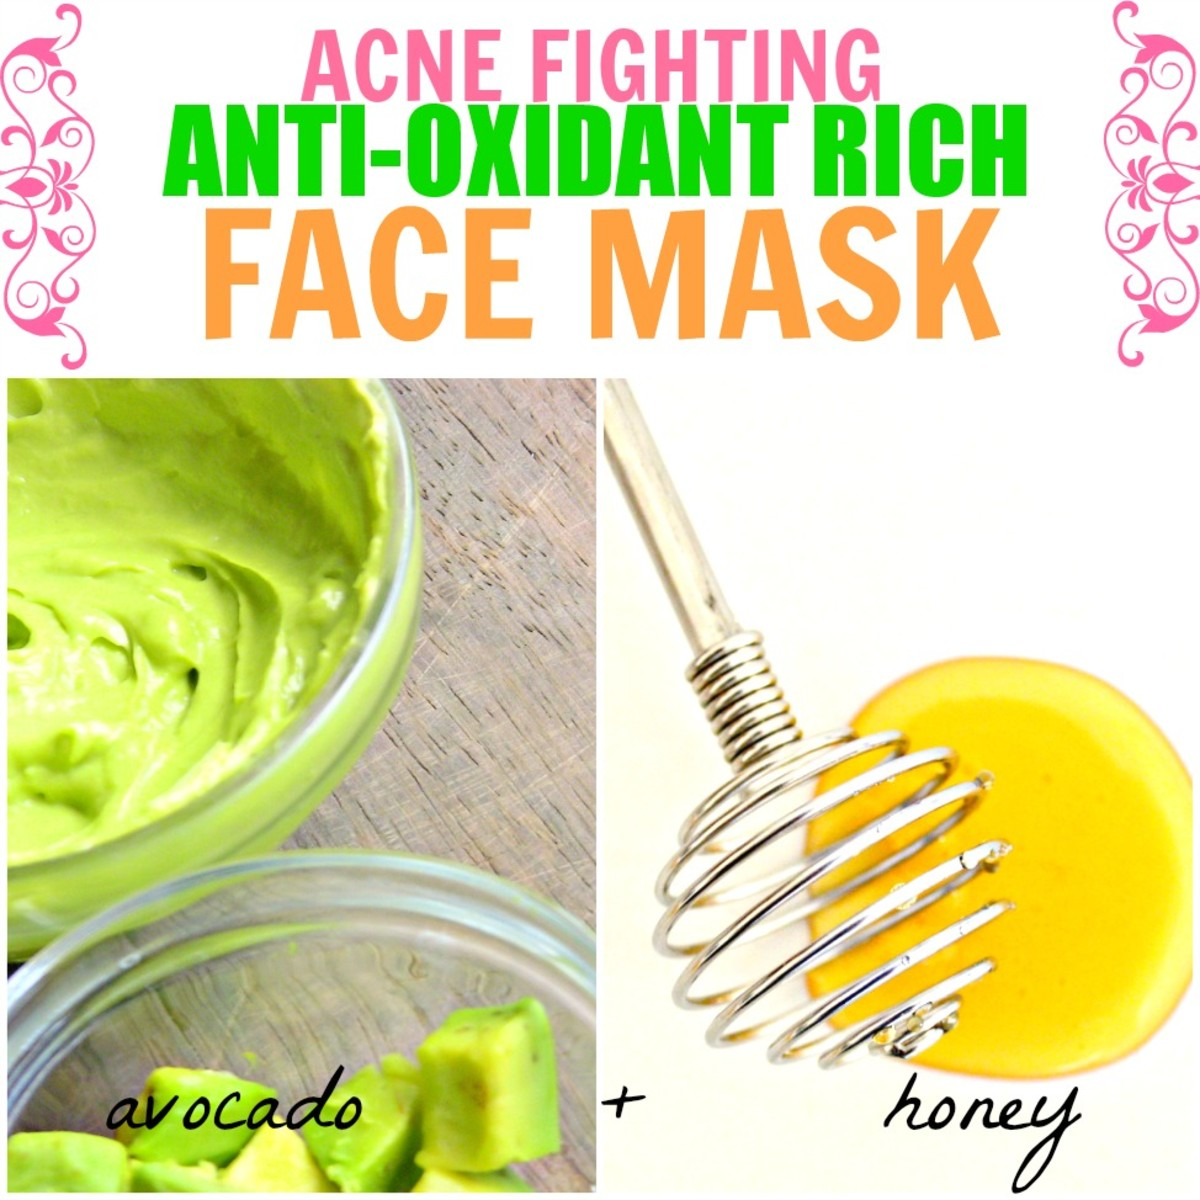 This antioxidant-rich face mask with avocado and honey is great for curing and preventing acne.